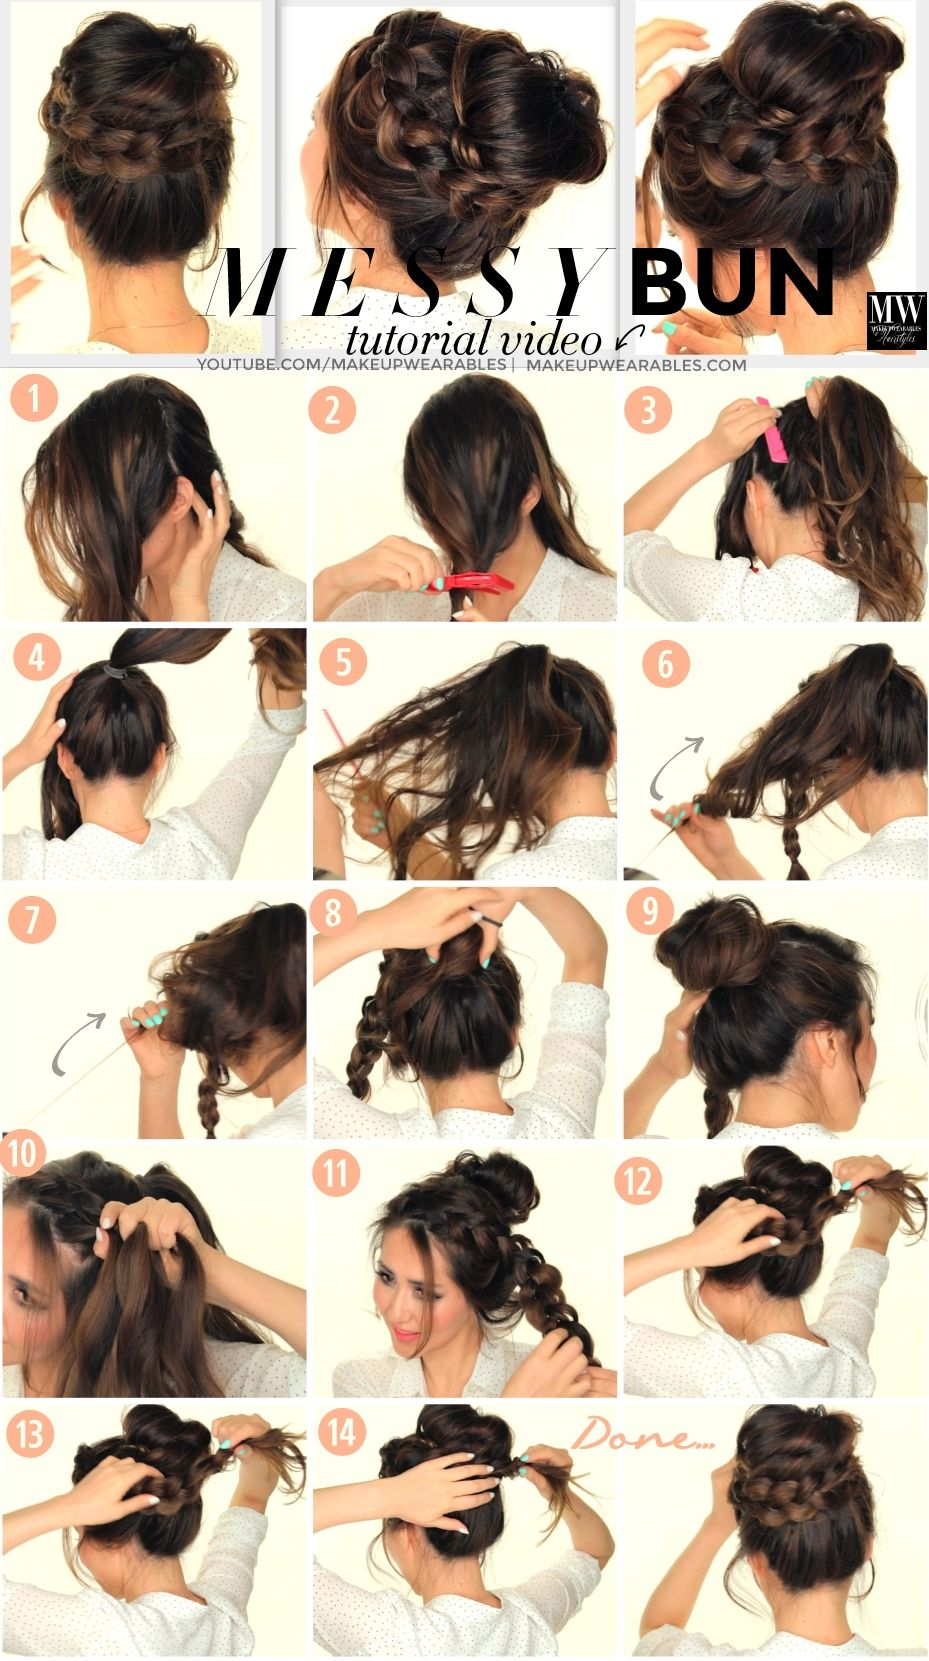 cute 5 minute, second-day hairstyle tutorial. learn how to create